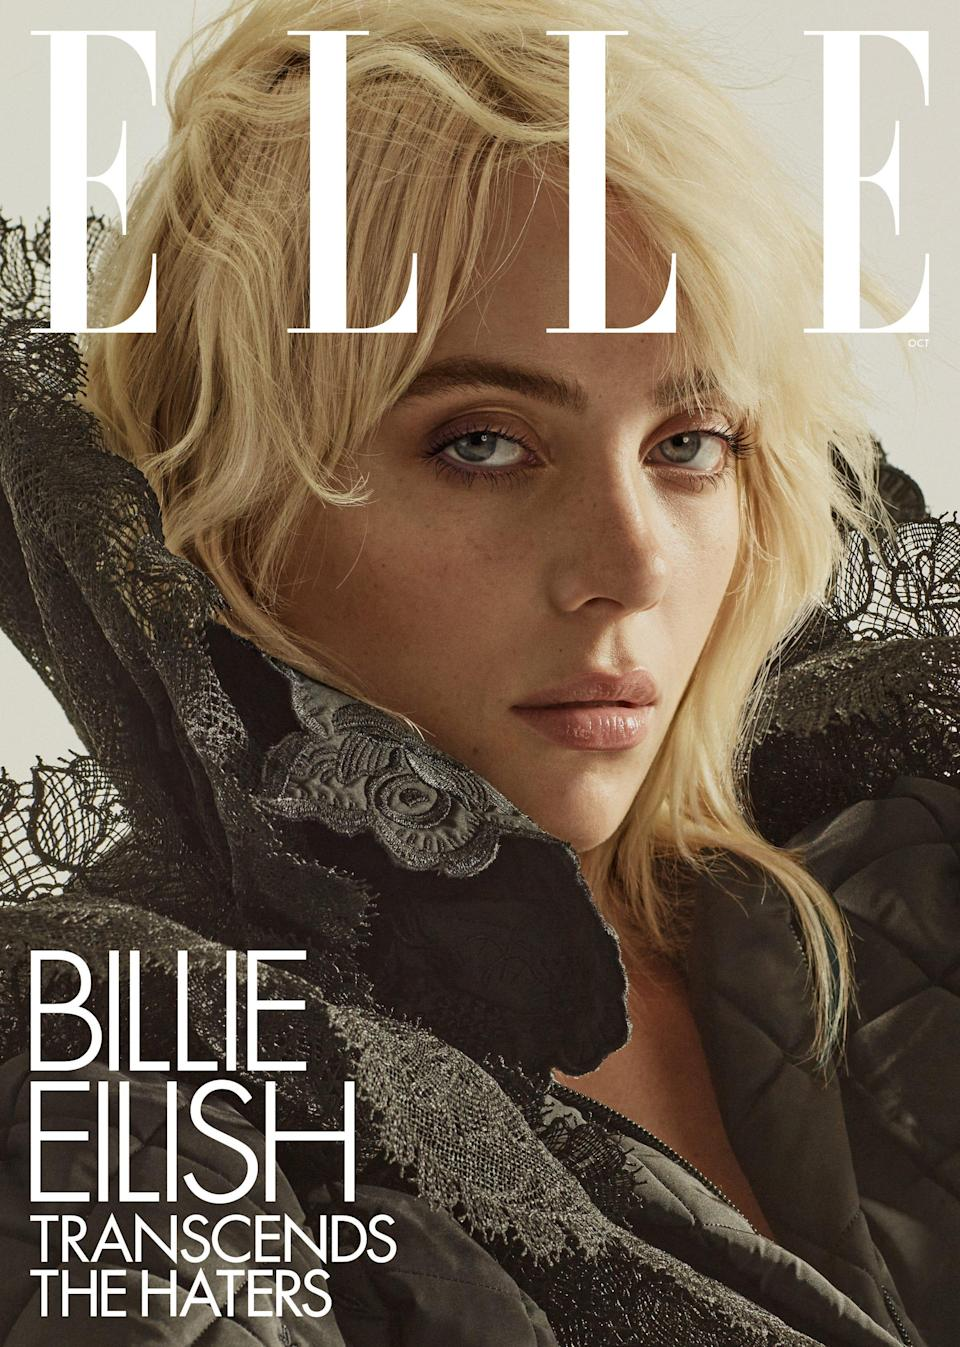 Singer Billie Eilish appears on the cover of Elle's October issue. Eilish told the outlet that dyeing her hair blonde was a significant change for her, both personally and professionally.